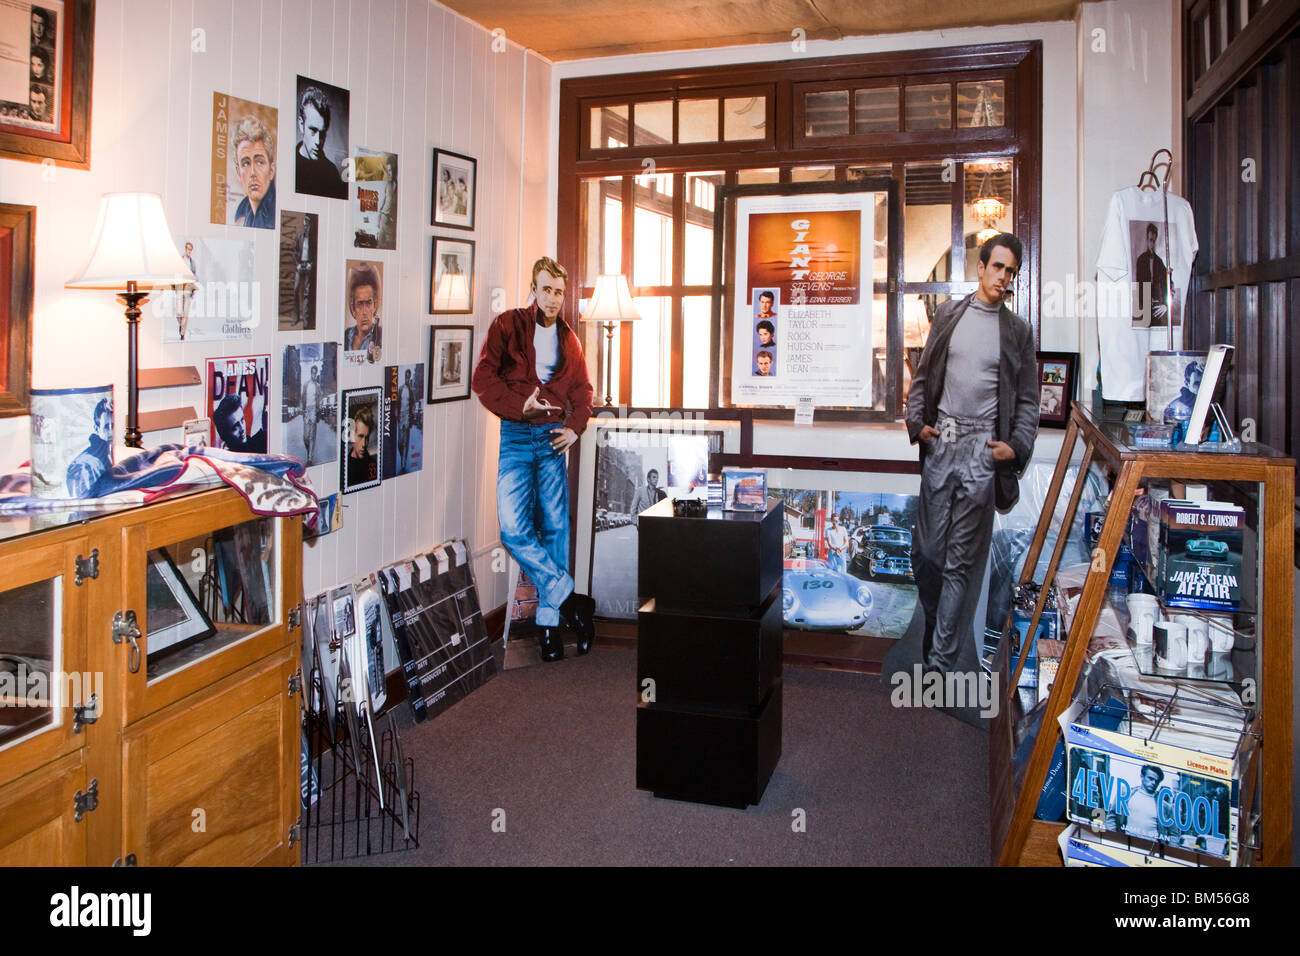 Room used for James Dean memorabilia in Hotel El Paisano where Giant was filmed Marfa Texas USA - Stock Image